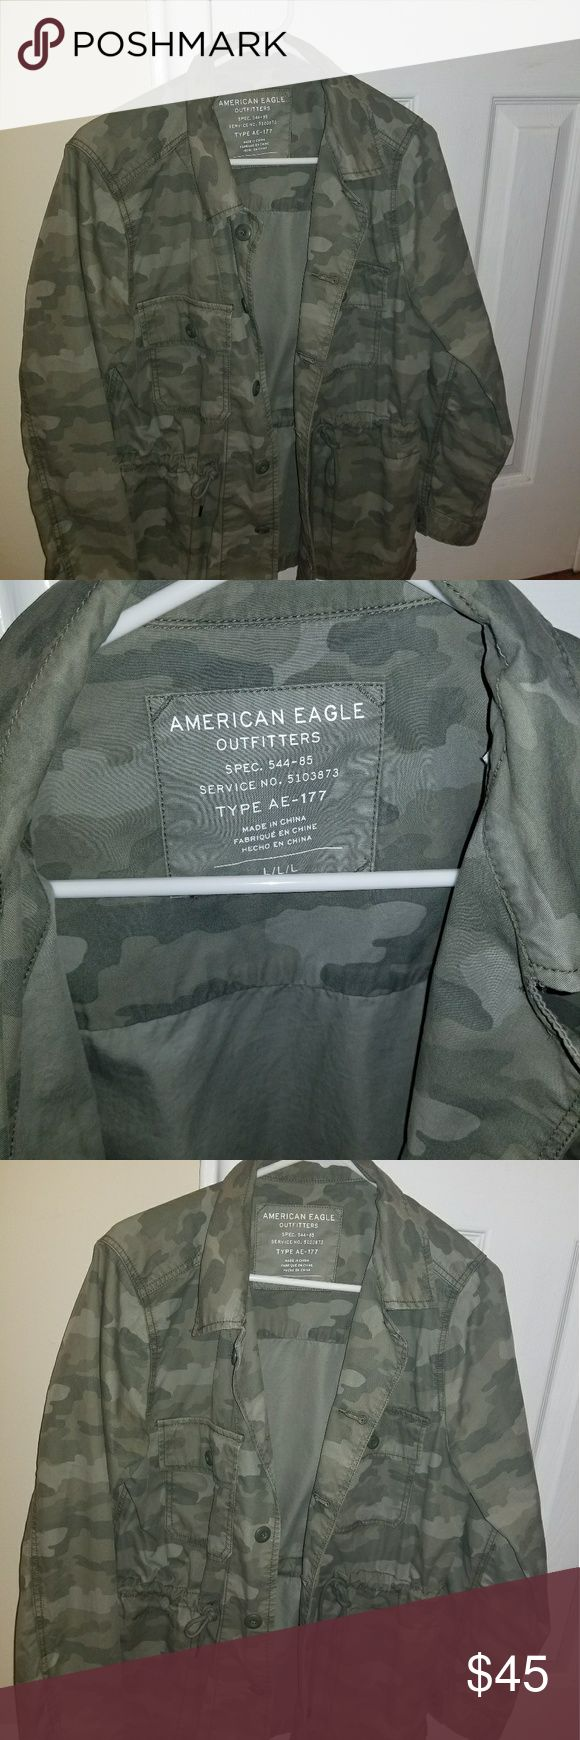 American Eagle Jacket 🔥🔥 Brand New🔥🔥  Never worn American Eagle army fatigue jacket. Cute for the fall or spring.   Best Offer American Eagle Outfitters Jackets & Coats